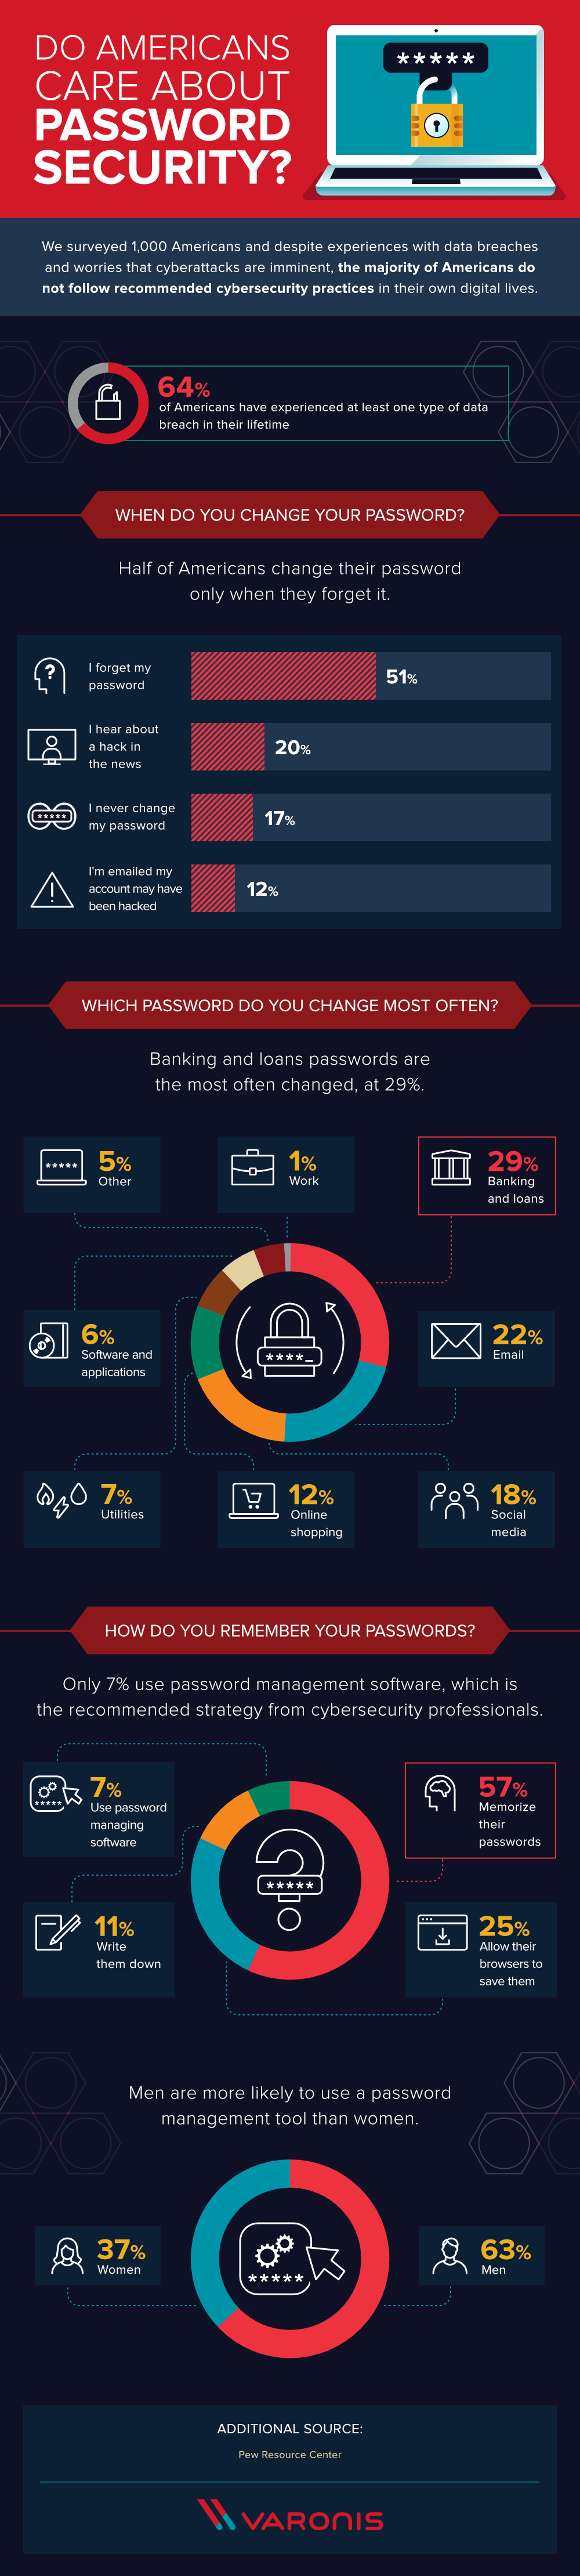 Do Americans Ever Change Their Passwords? #infographic